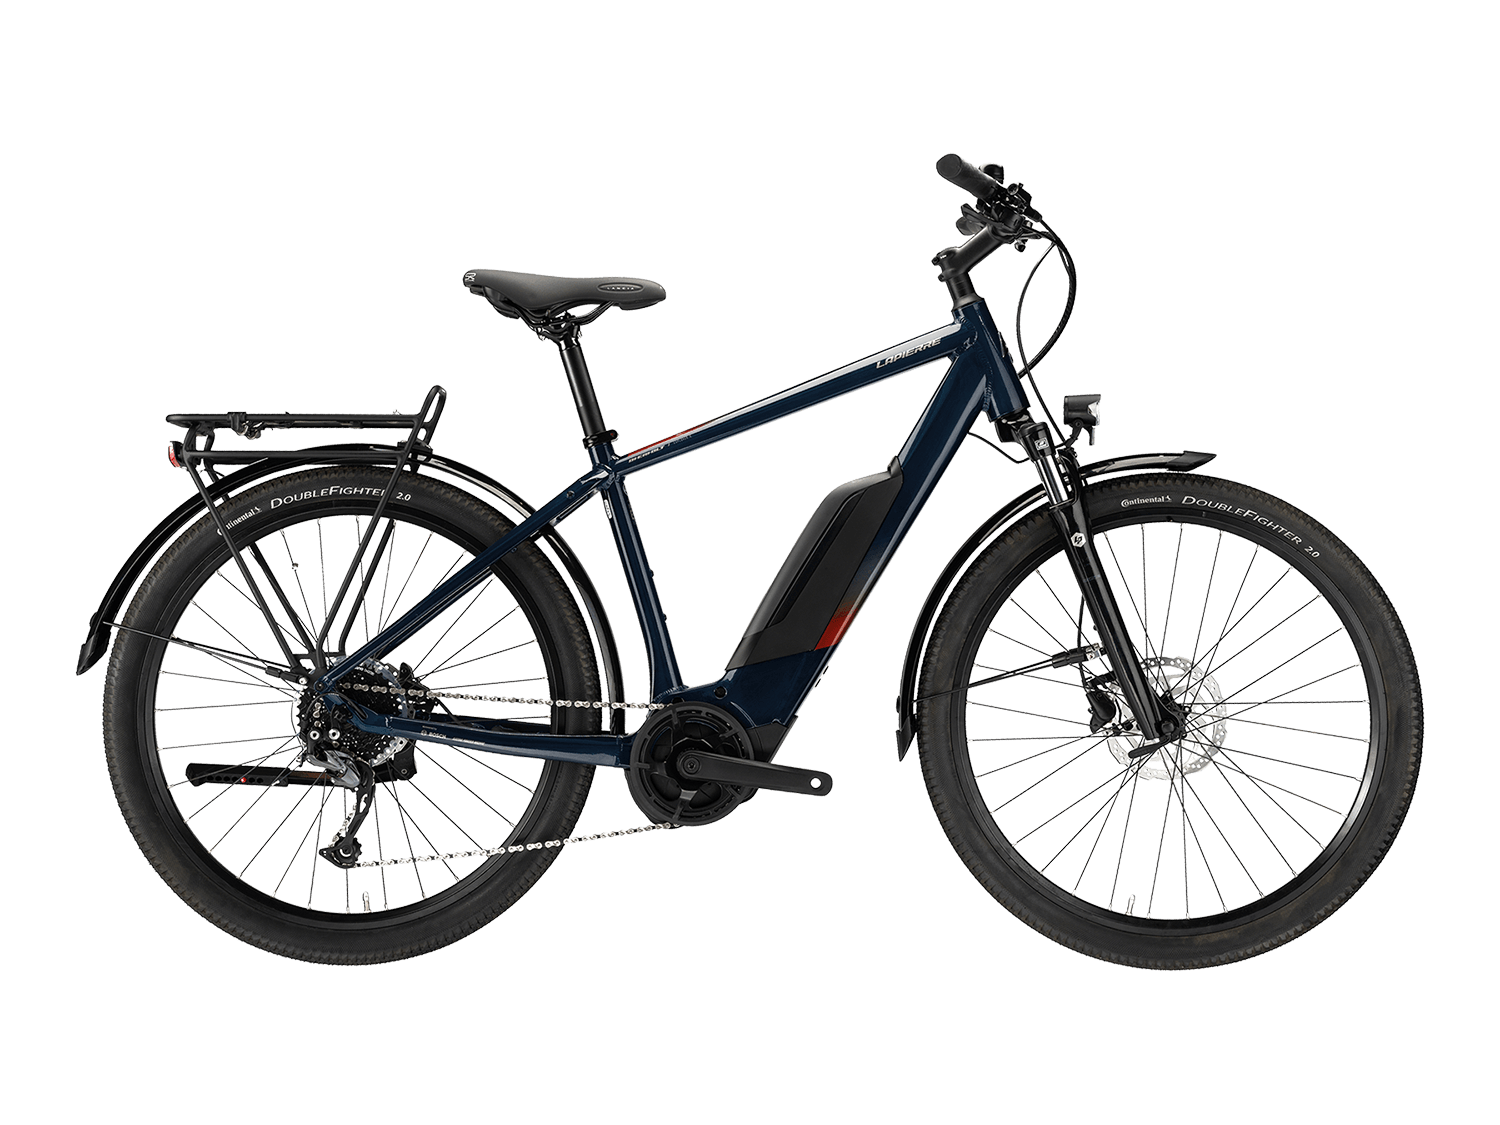 Lapierre Overvolt Explorer 6.4 2021 Electric City Bike